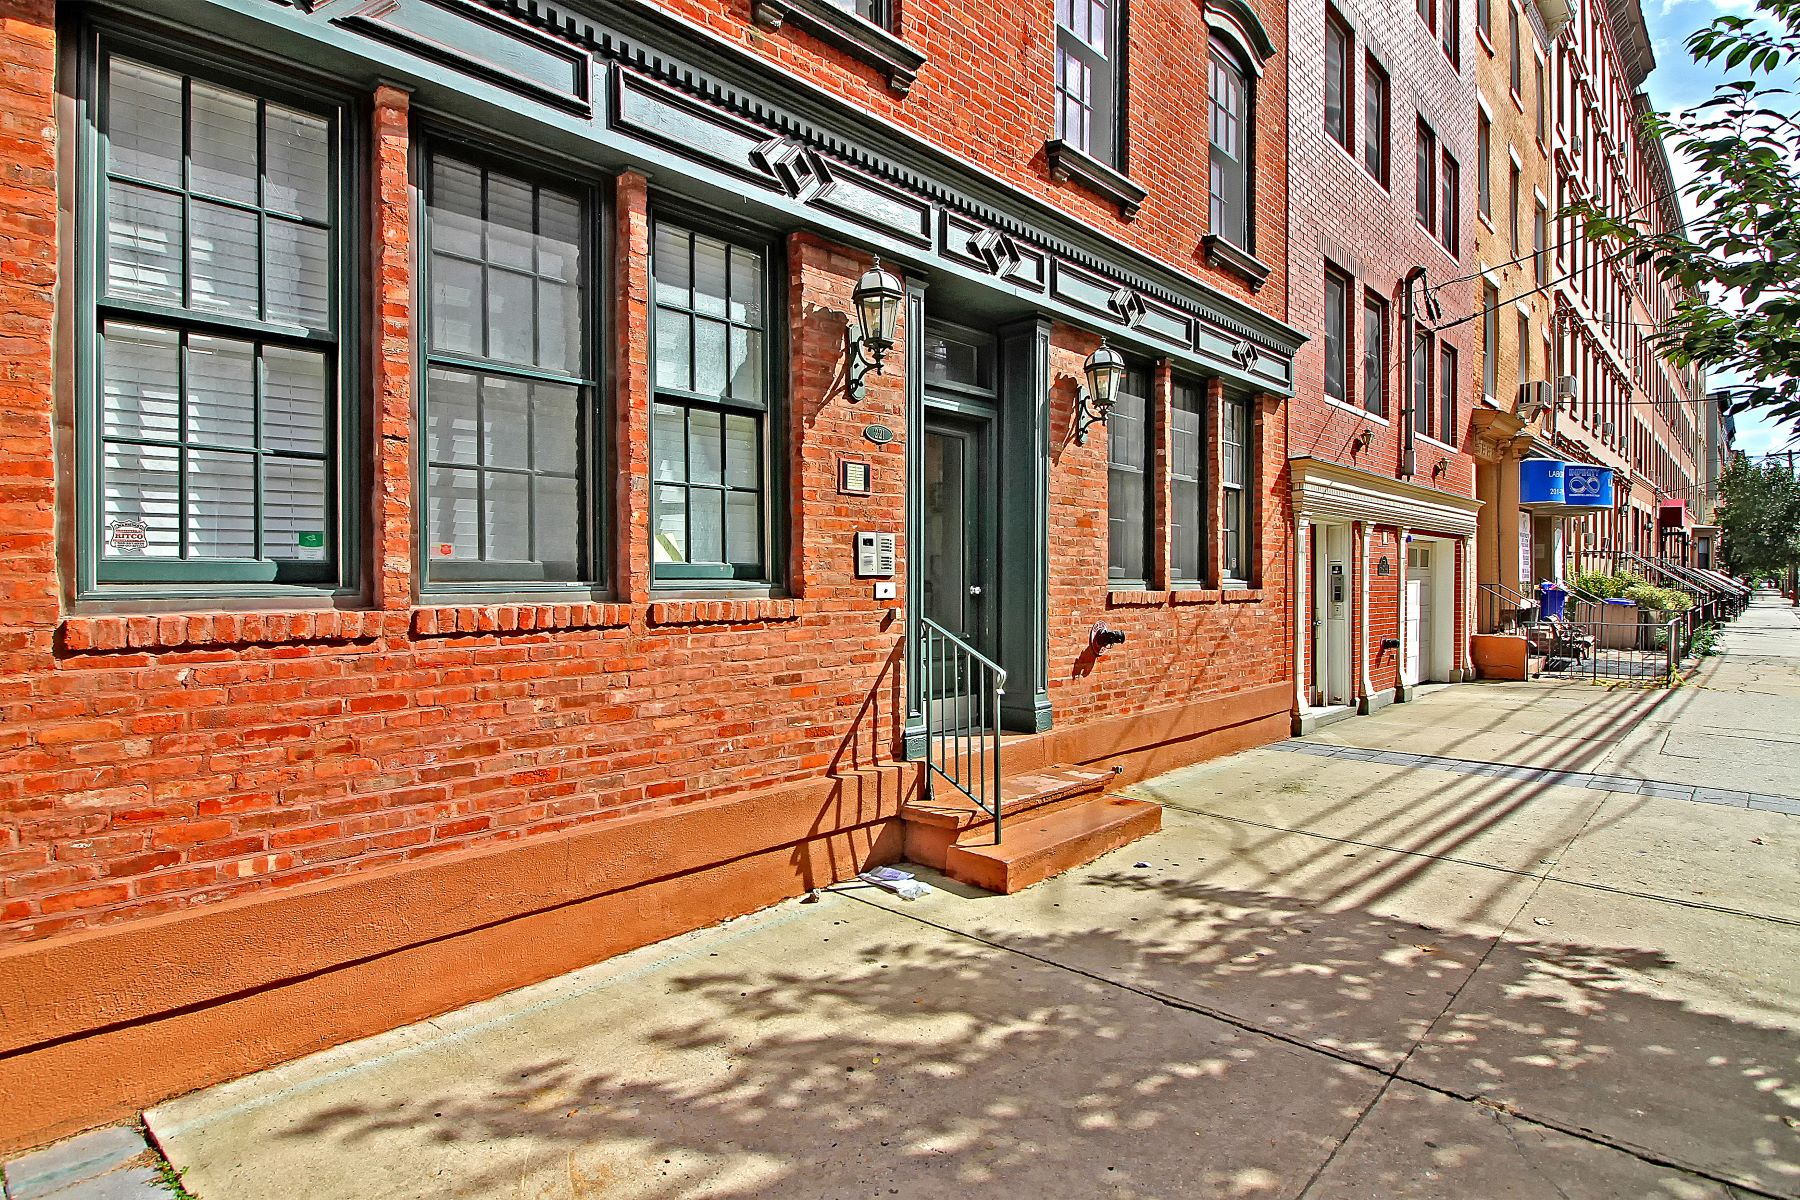 Condominium for Sale at 2 Bedroom/ 2 Bathroom condo is located in a fantastic downtown Hoboken 221 Willow Ave #1R, Hoboken, New Jersey 07030 United States